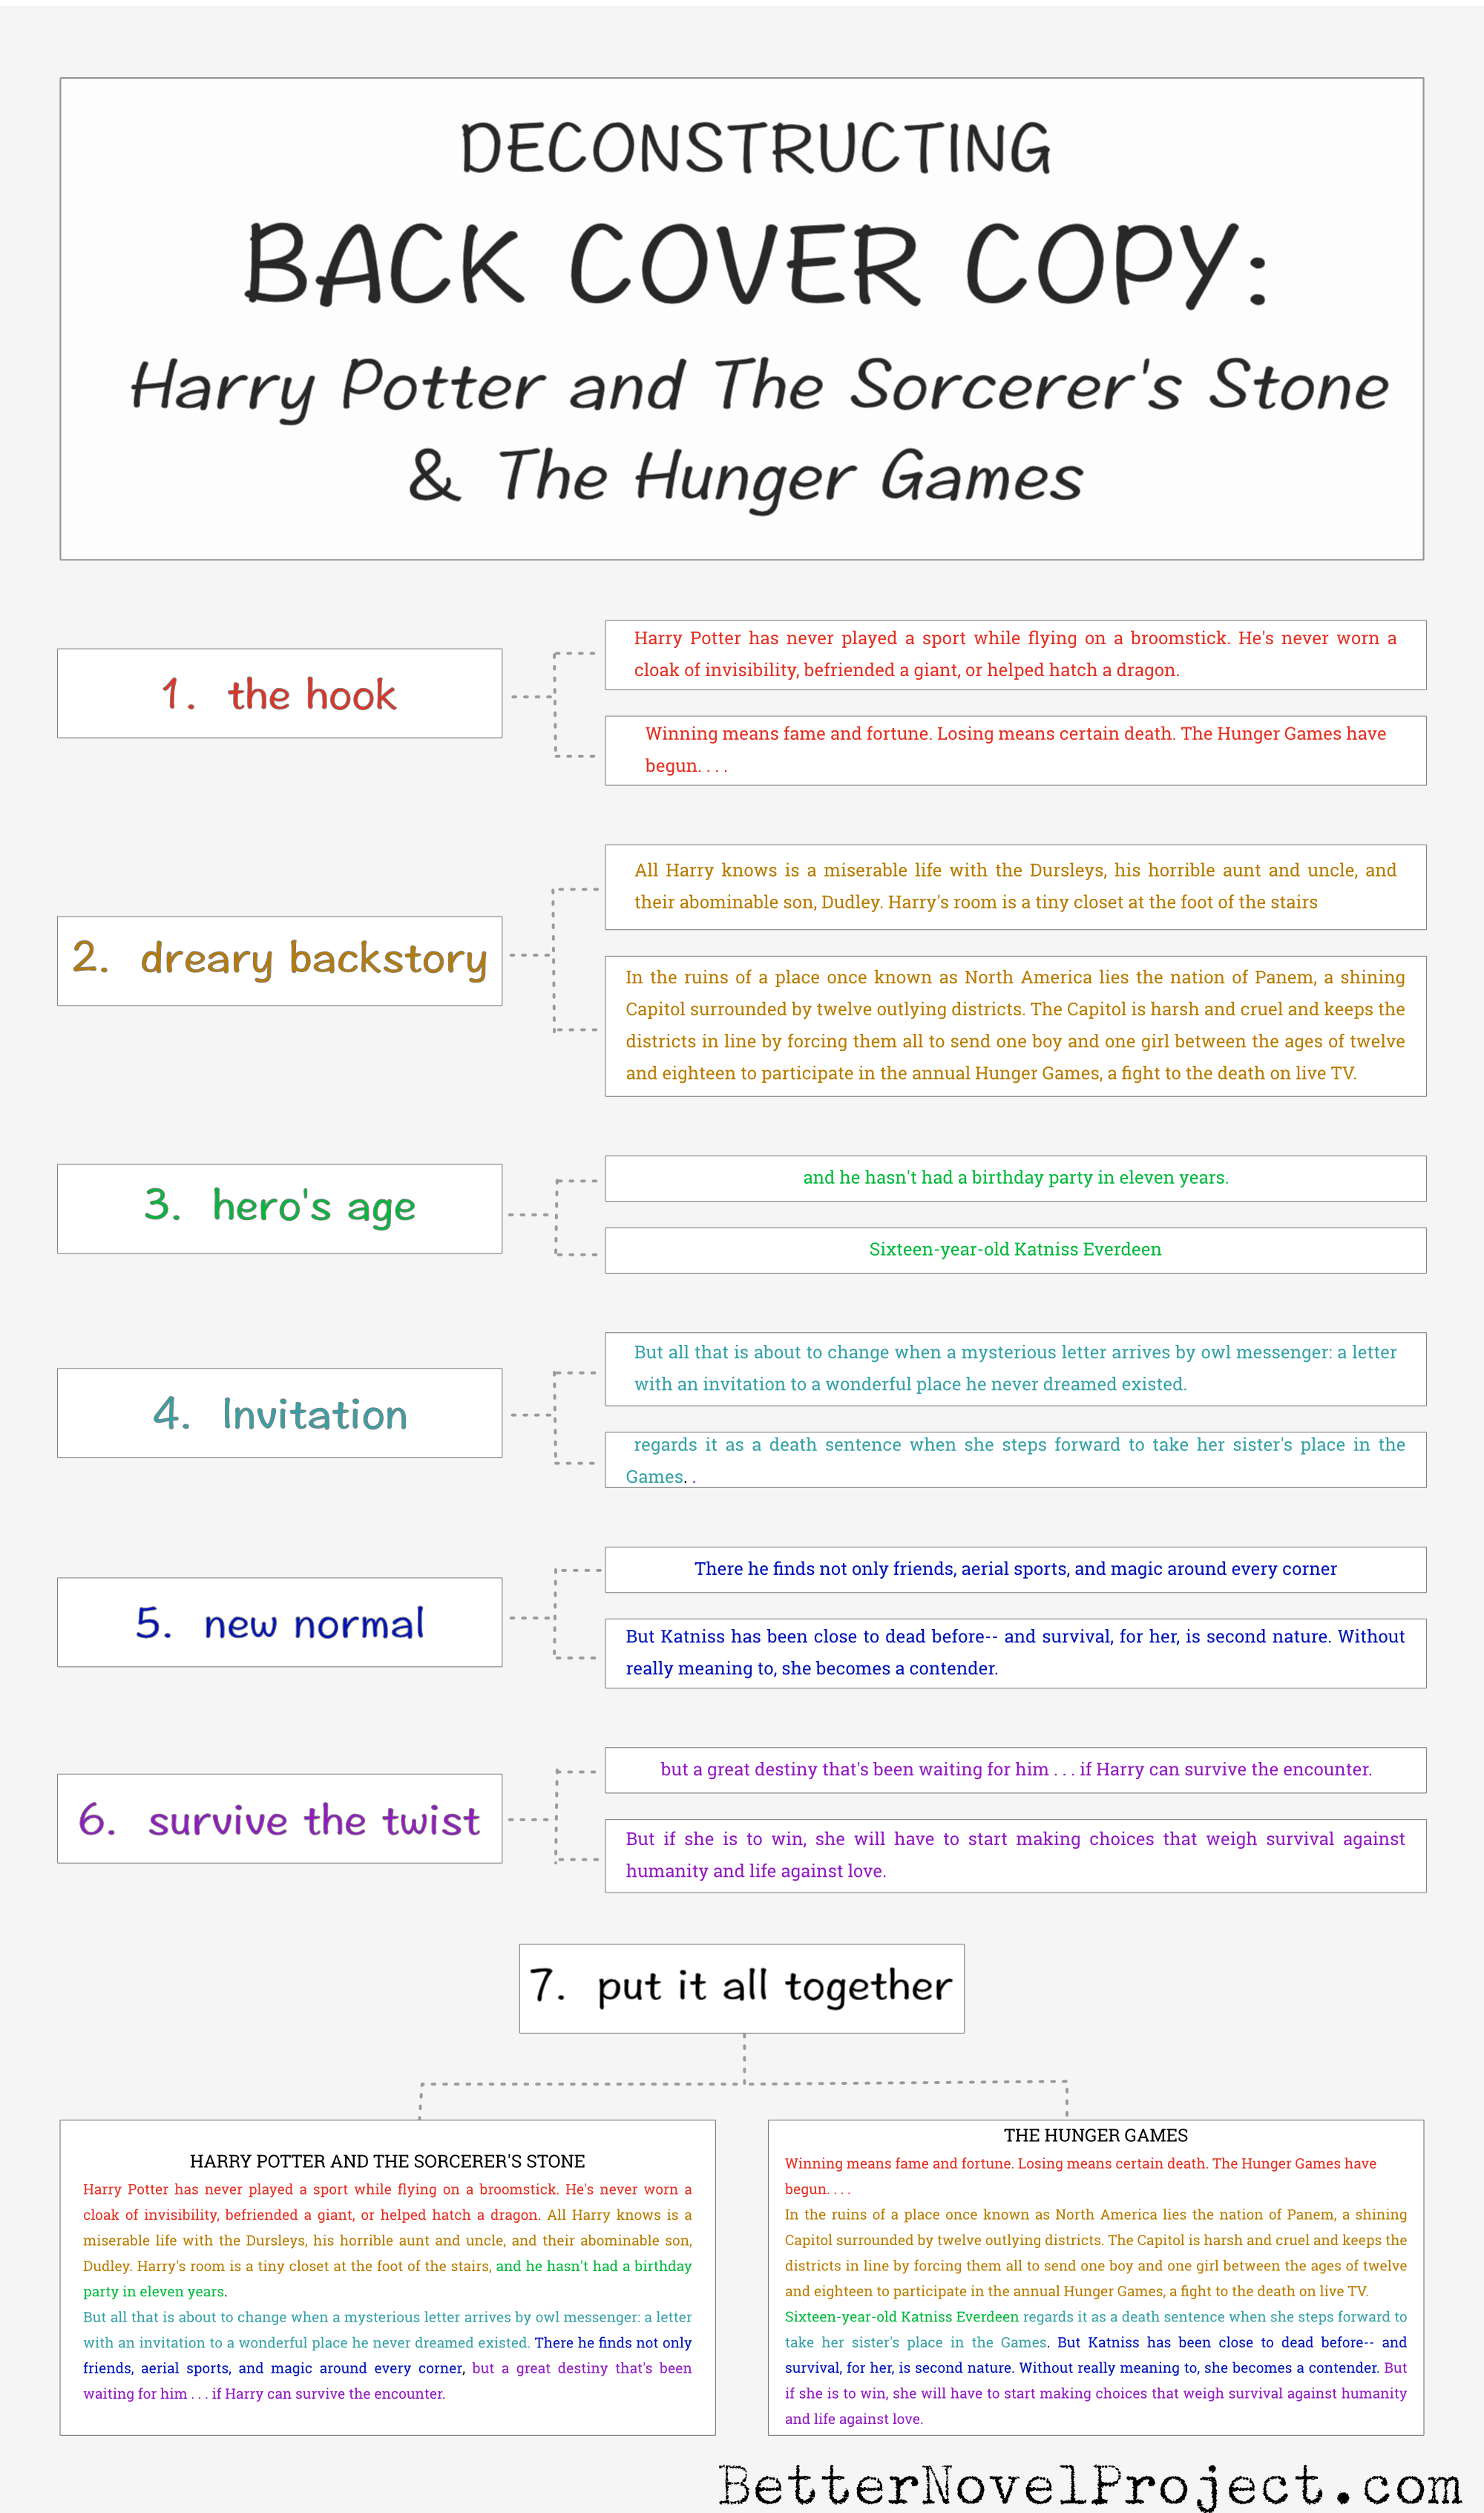 Deconstructing Back Cover Copy Infographic Spreadsheet